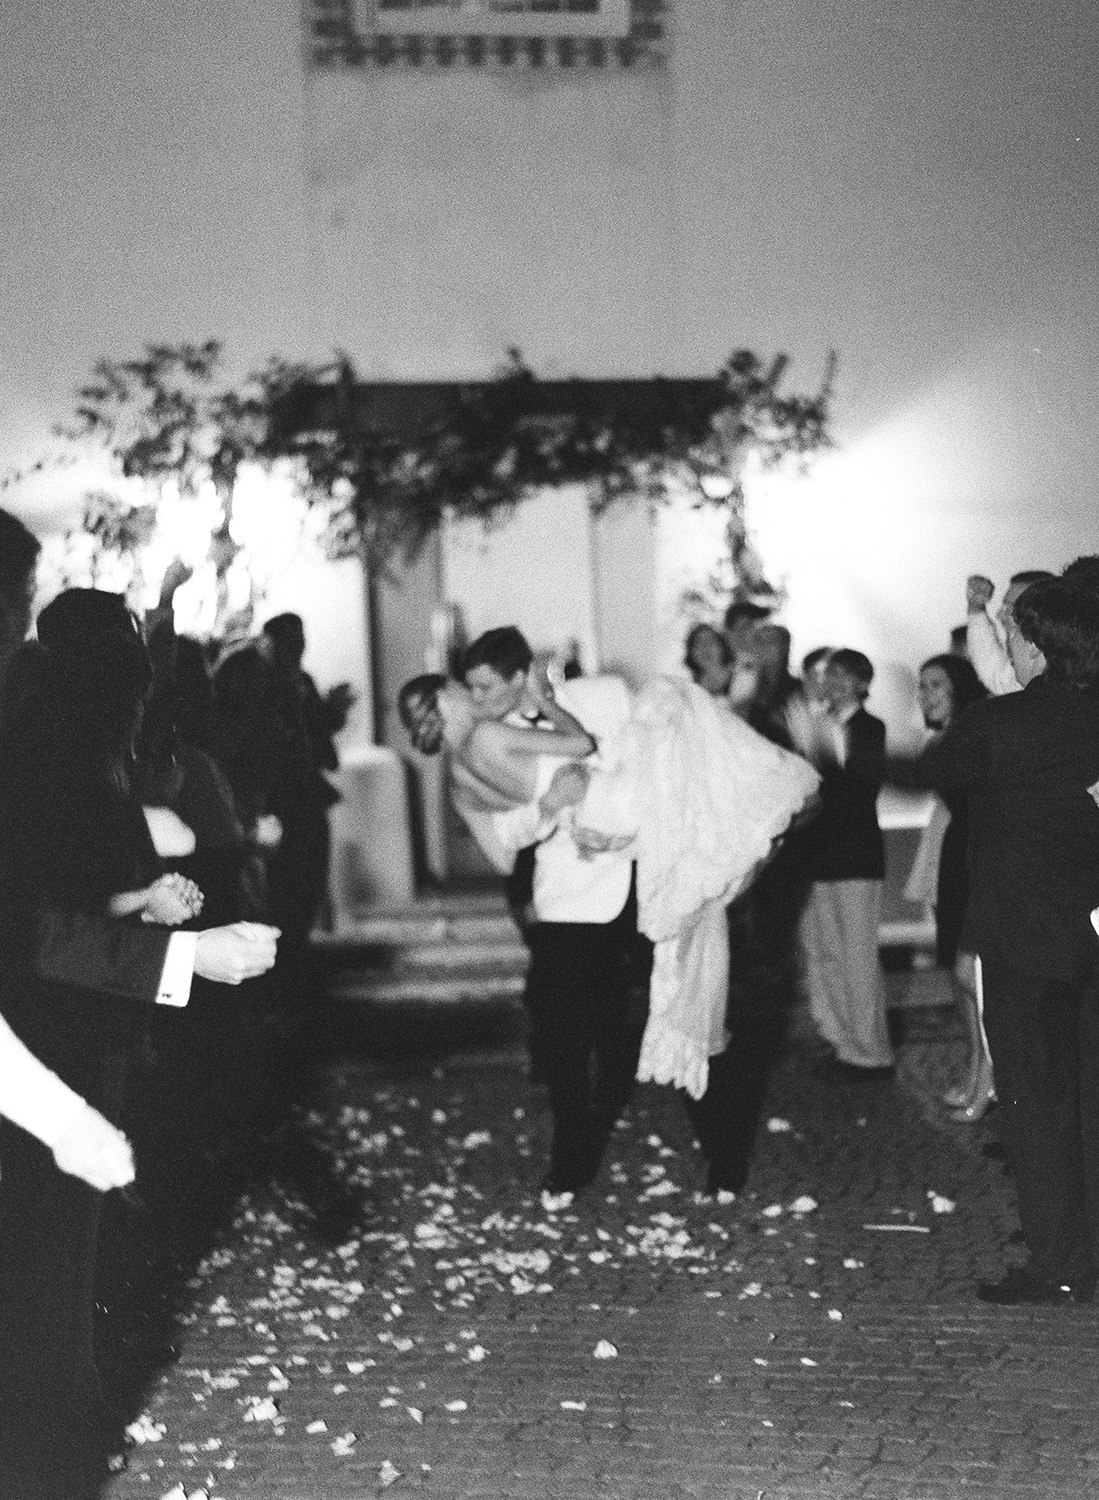 rosemary-beach-town-hall-wedding.jpg